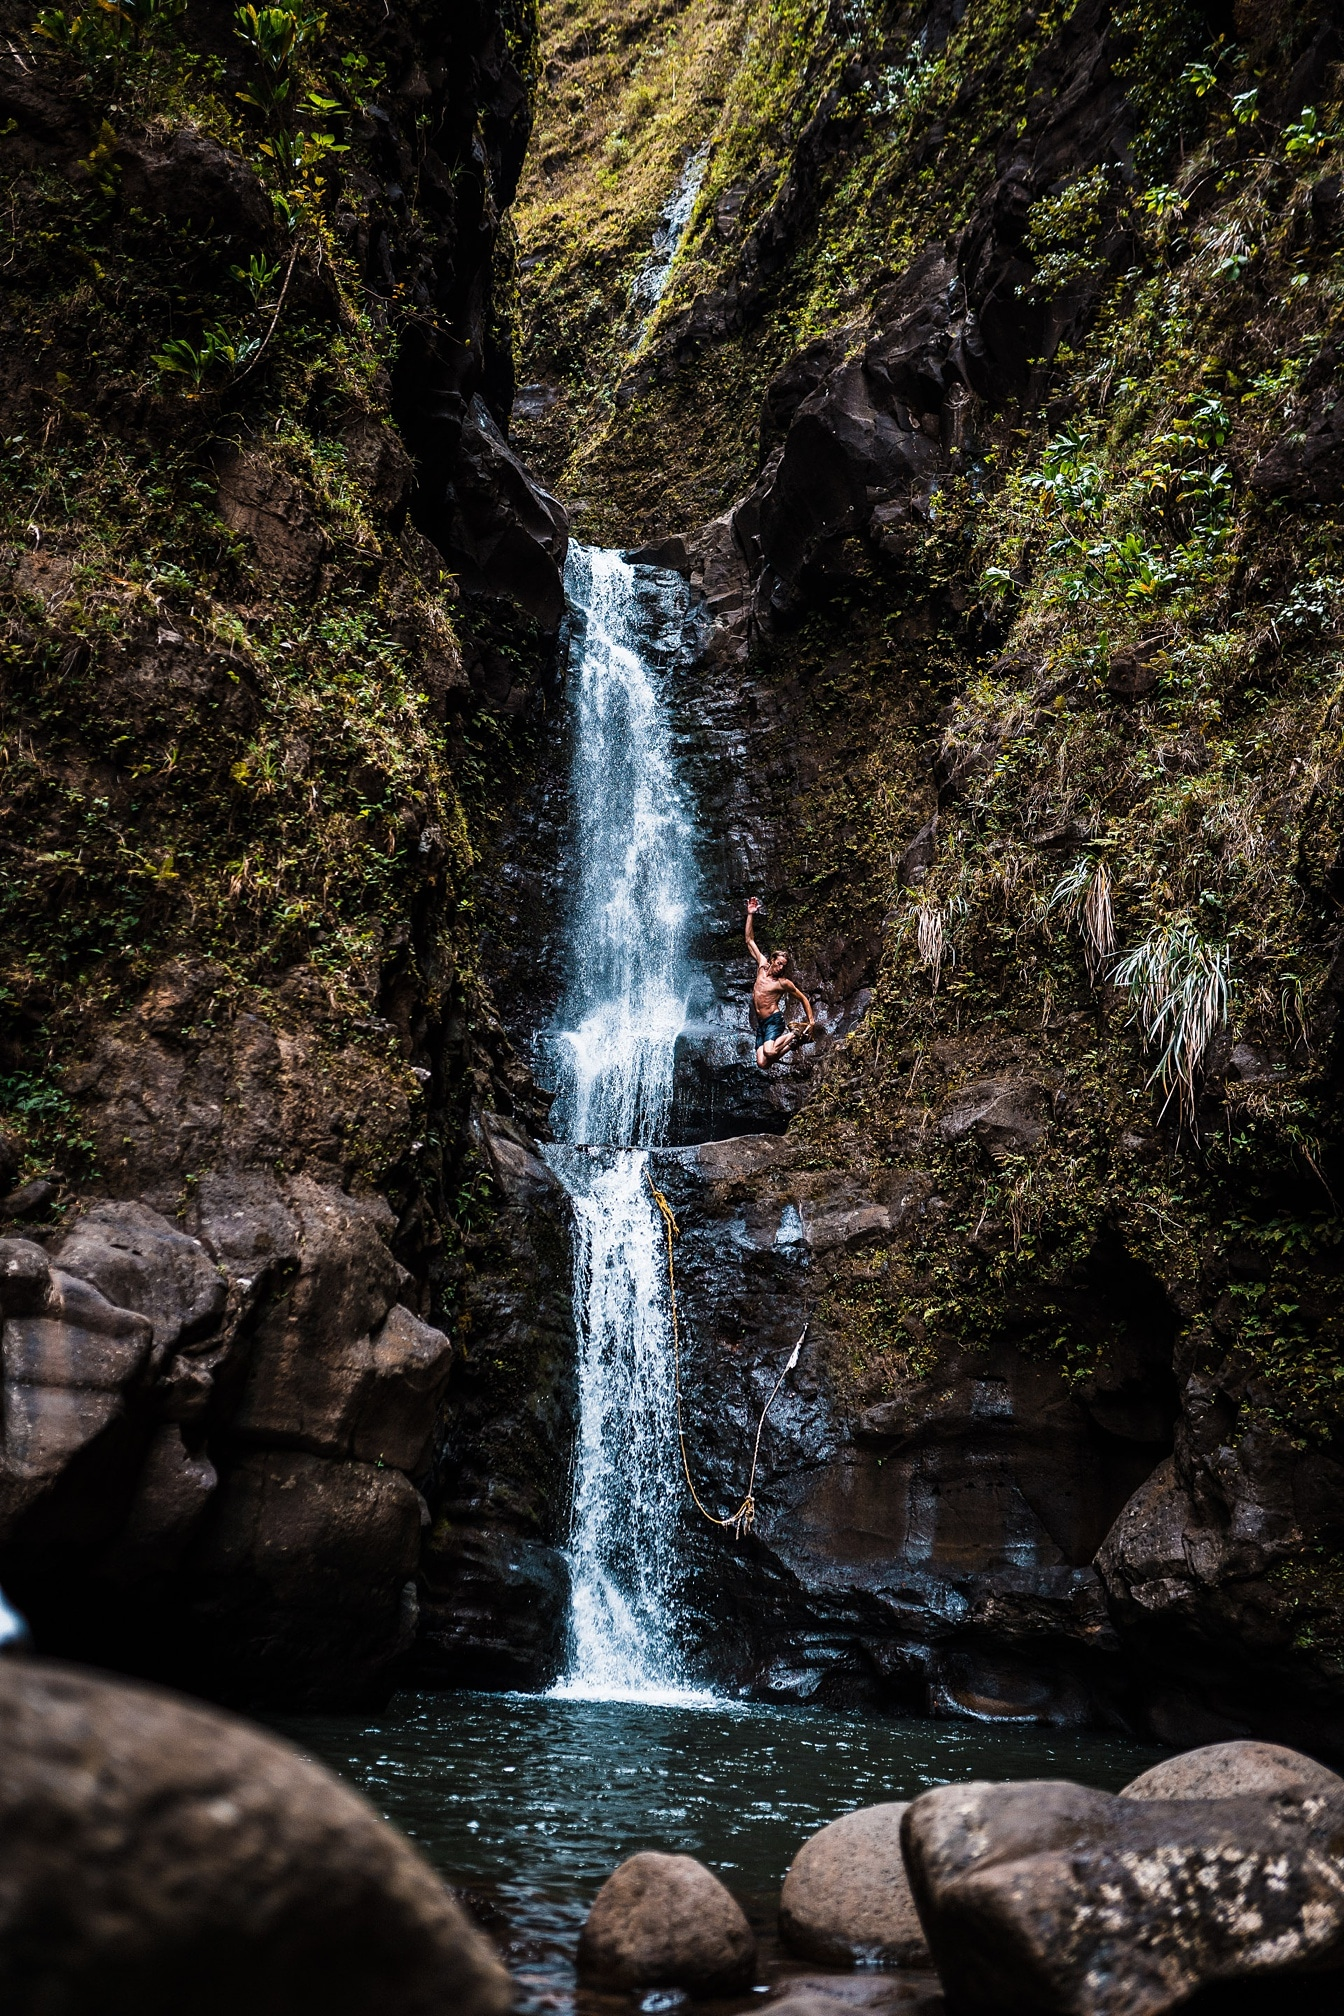 Kauai Waterfall cliff jump